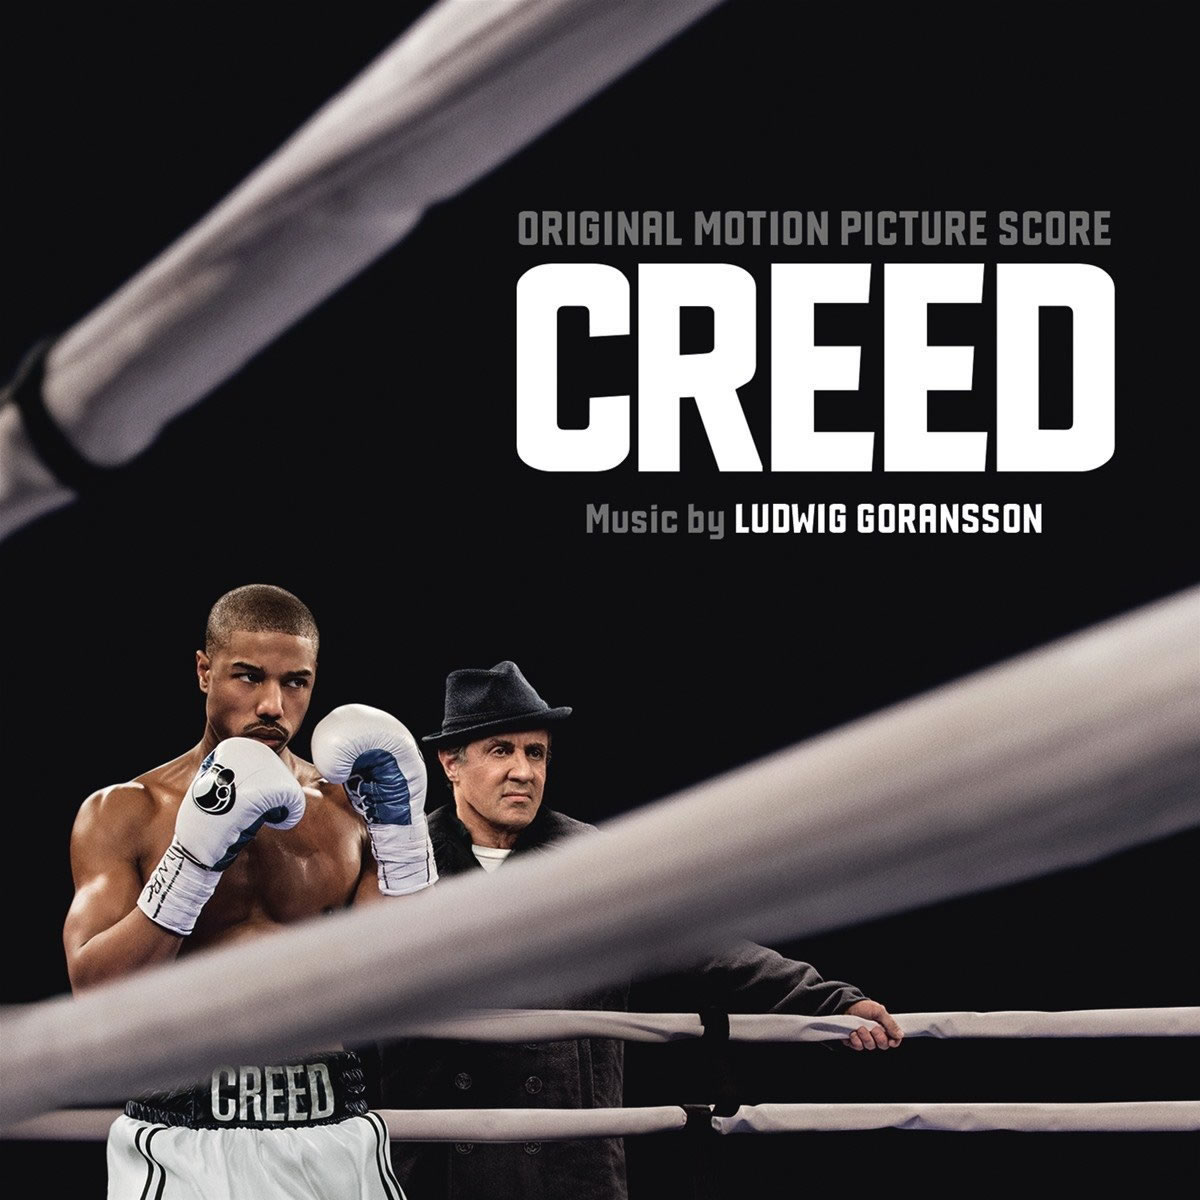 CREED - THE ORIGINAL MOTION PICTURE SCORE (AUDIO CD)